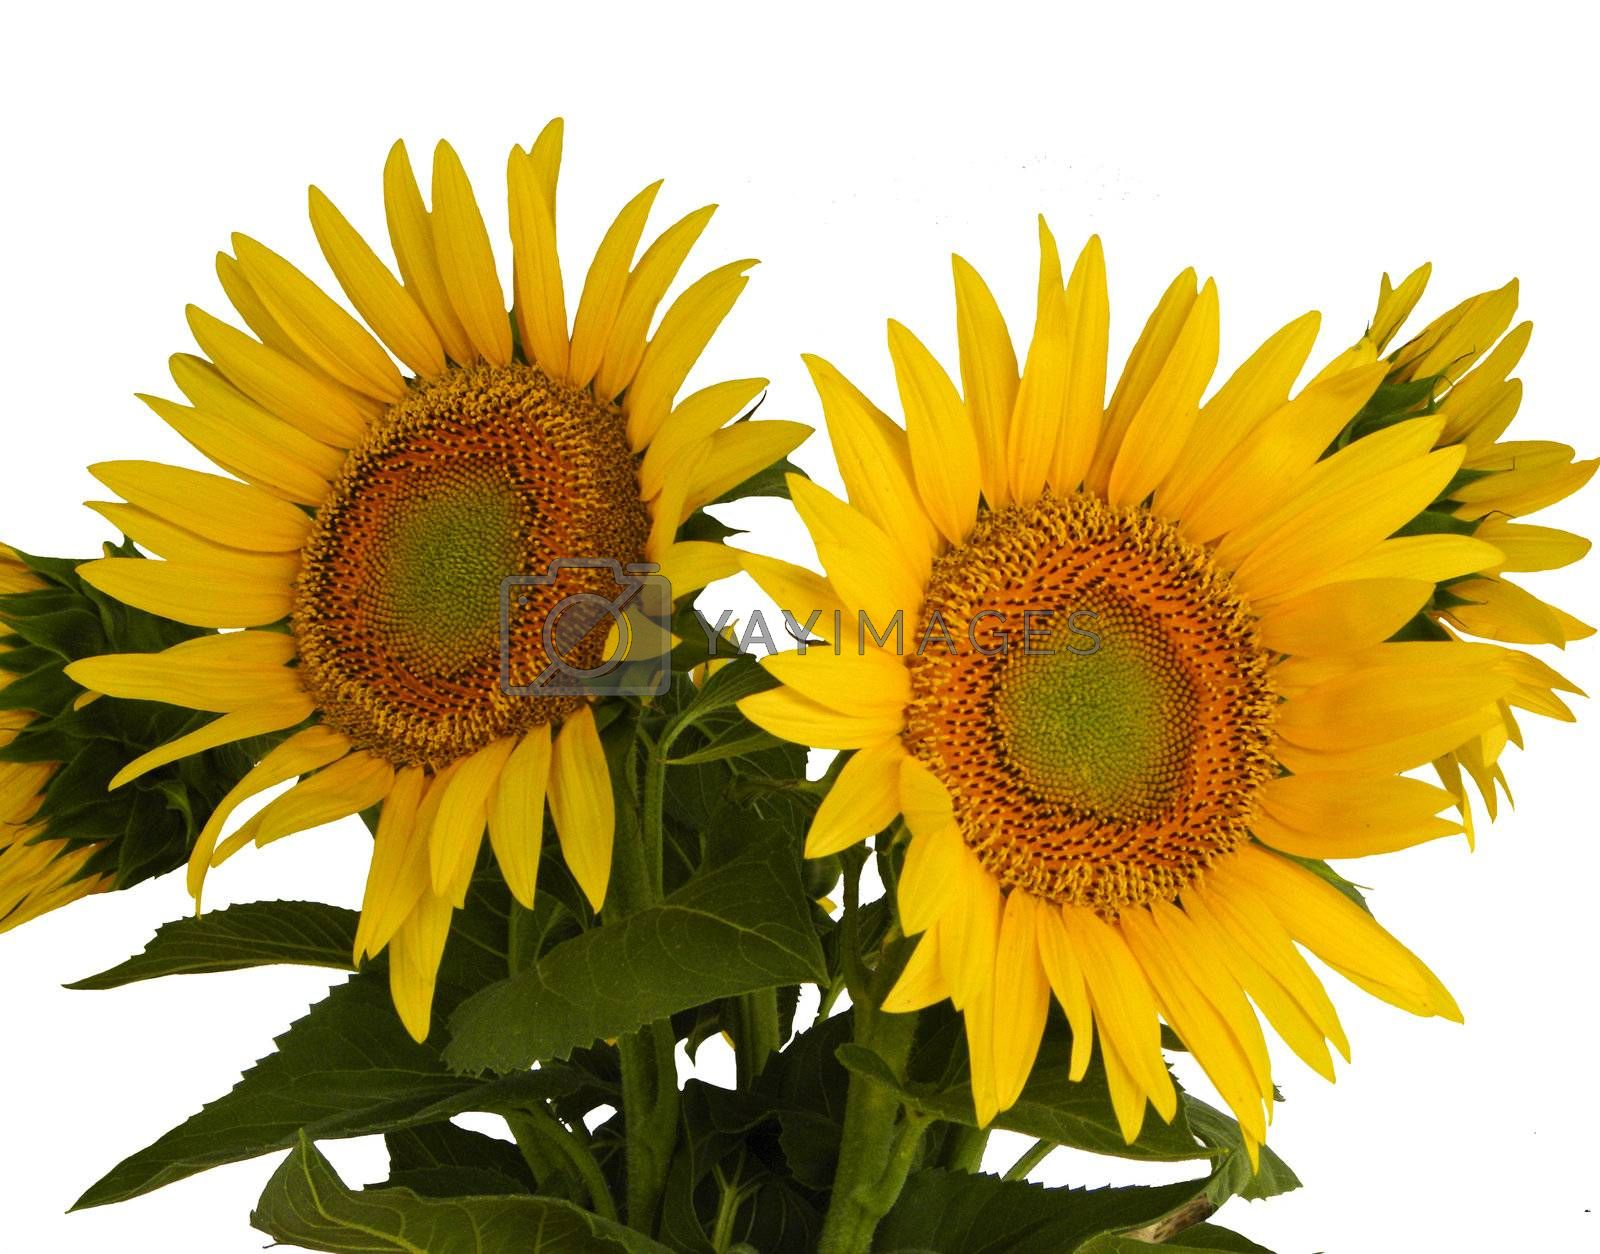 Group of sunflowers on a white background